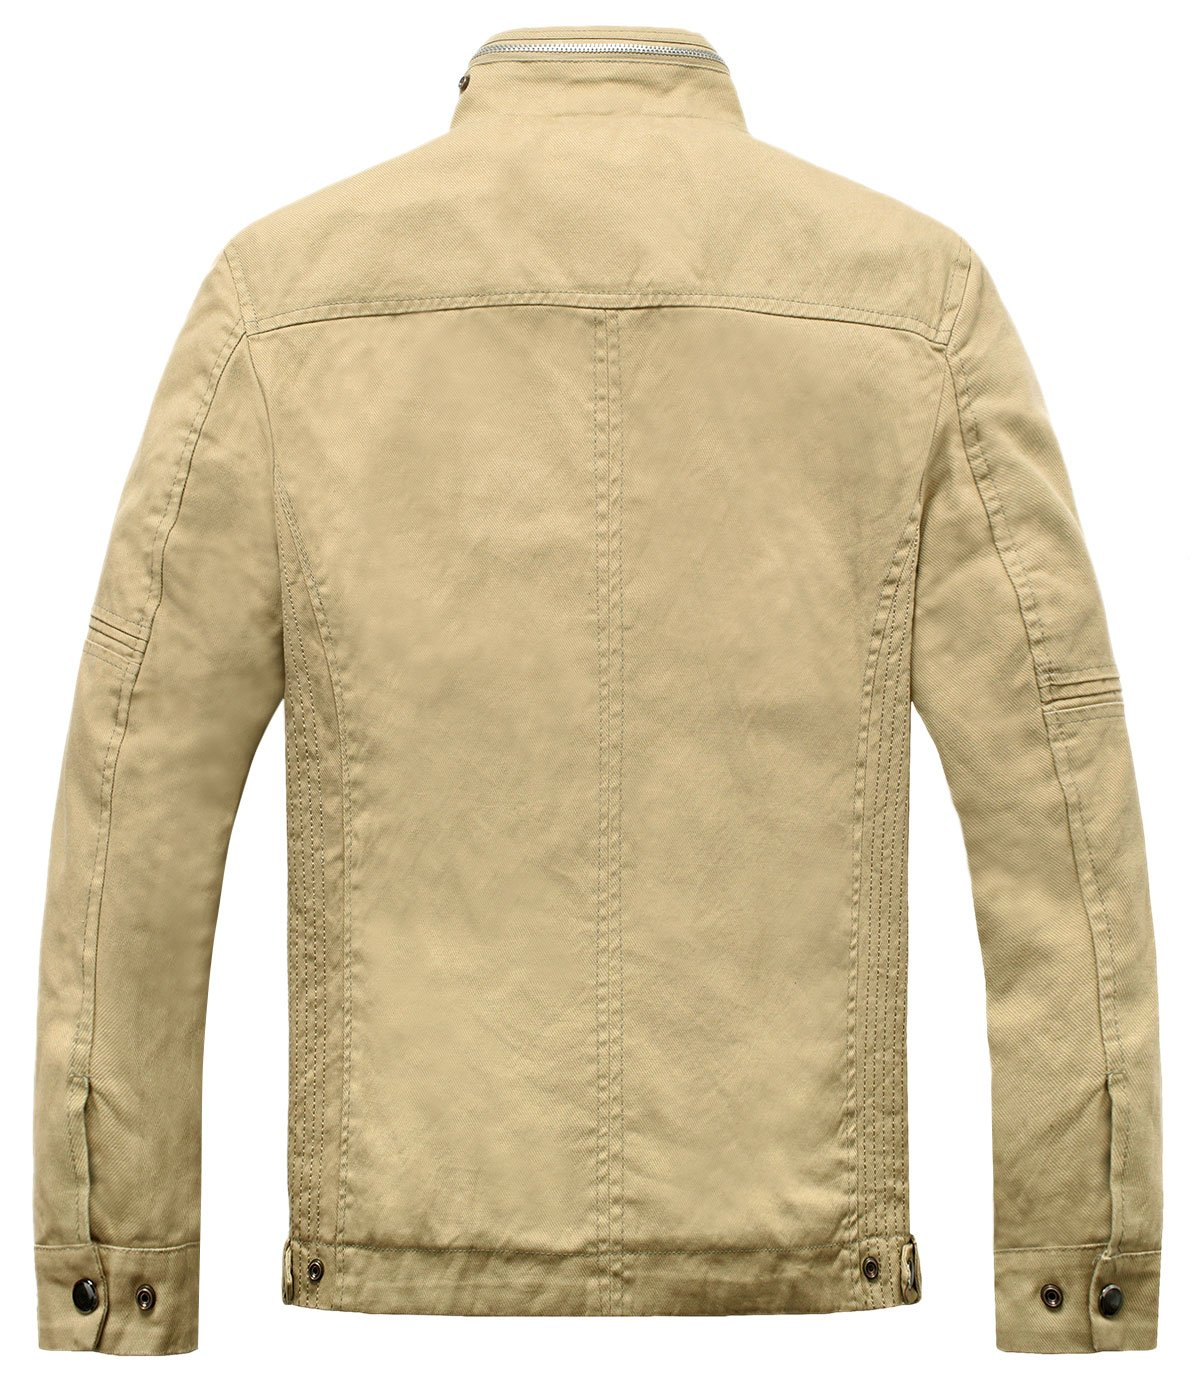 bf9575461 Wantdo Men's Cotton Stand Collar Lightweight Front Zip Jacket US Medium  Khaki - WT0867 < Cotton < Clothing, Shoes & Jewelry - tibs